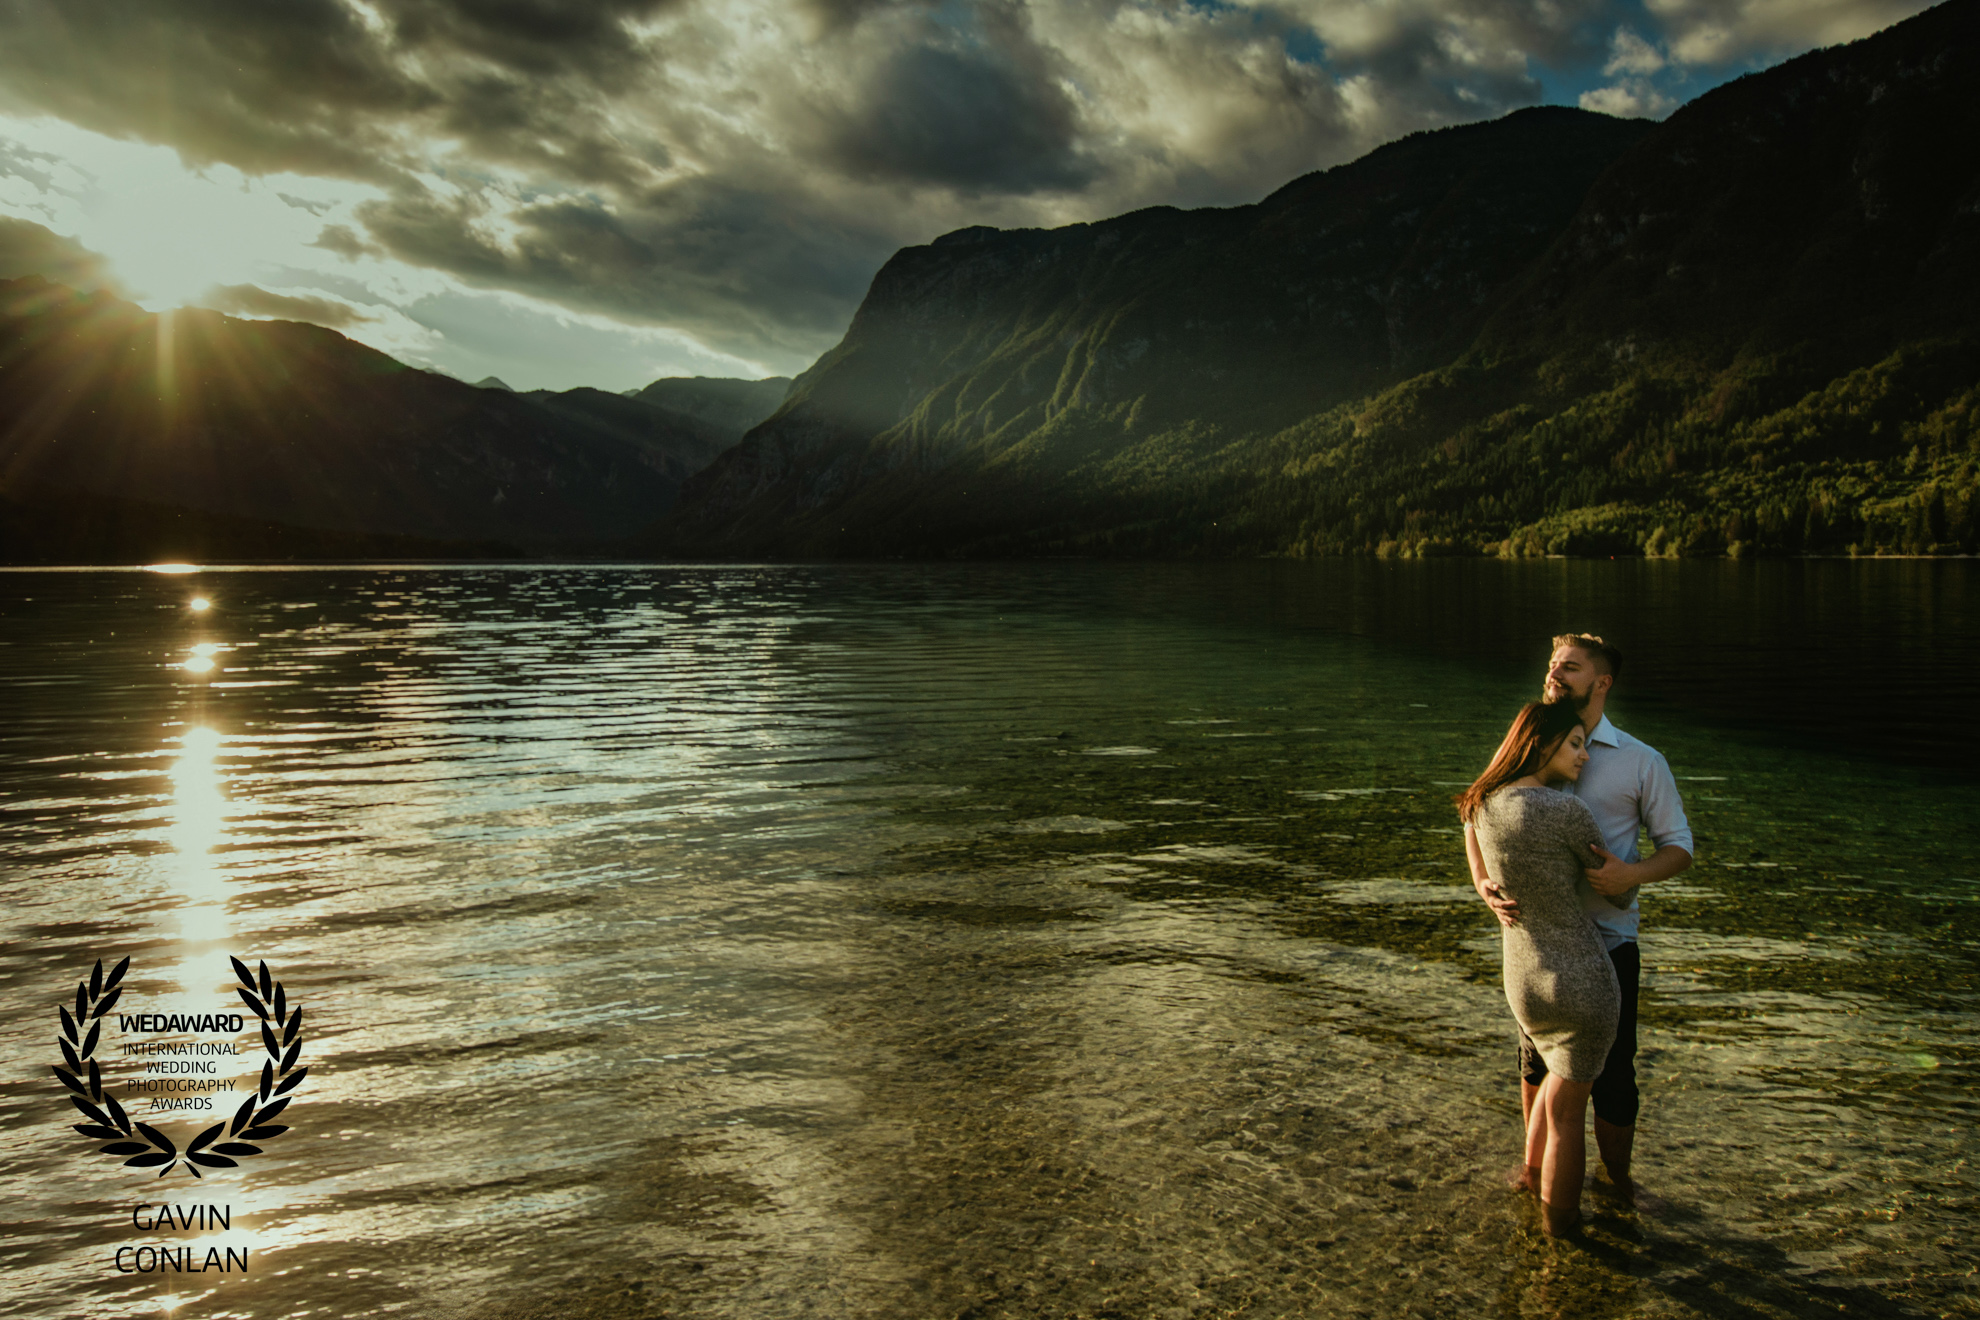 destination-engagement-session-portrait-slovenia-gavin-conlan-photography-wedaward